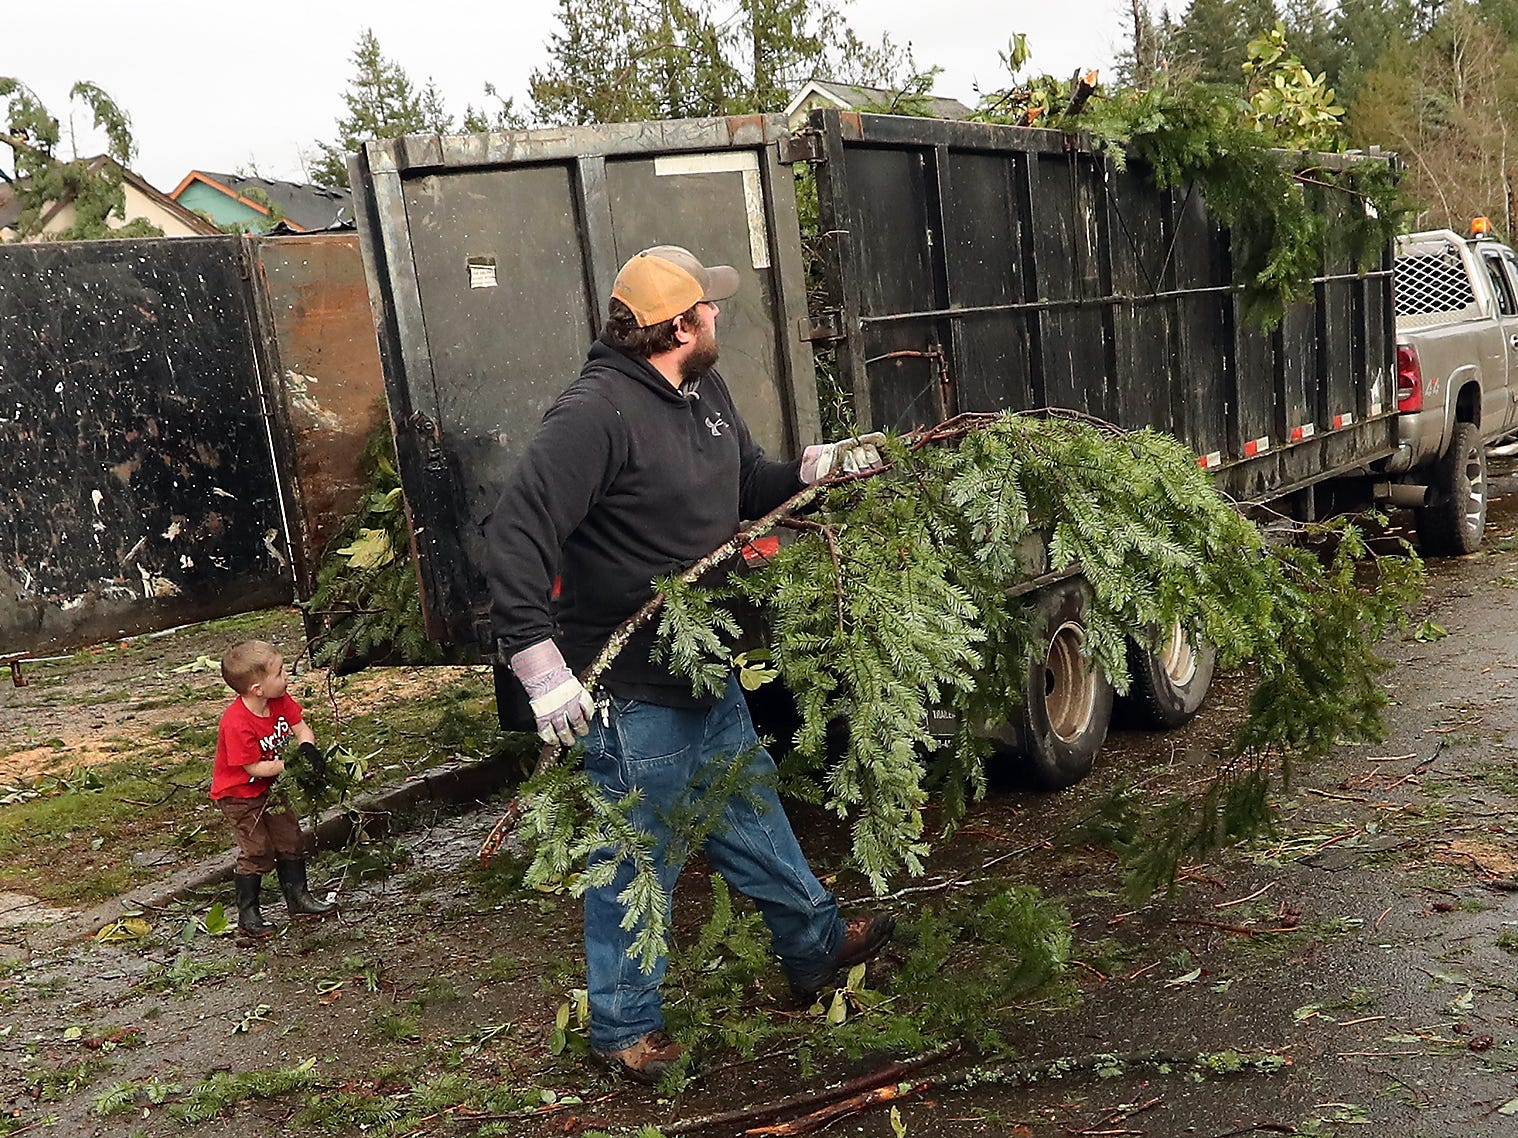 Residents and work crews clean up the aftermath of Tuesday's tornado in the neighborhoods along Harris Road SE in Port Orchard on Wednesday, December 19, 2018.